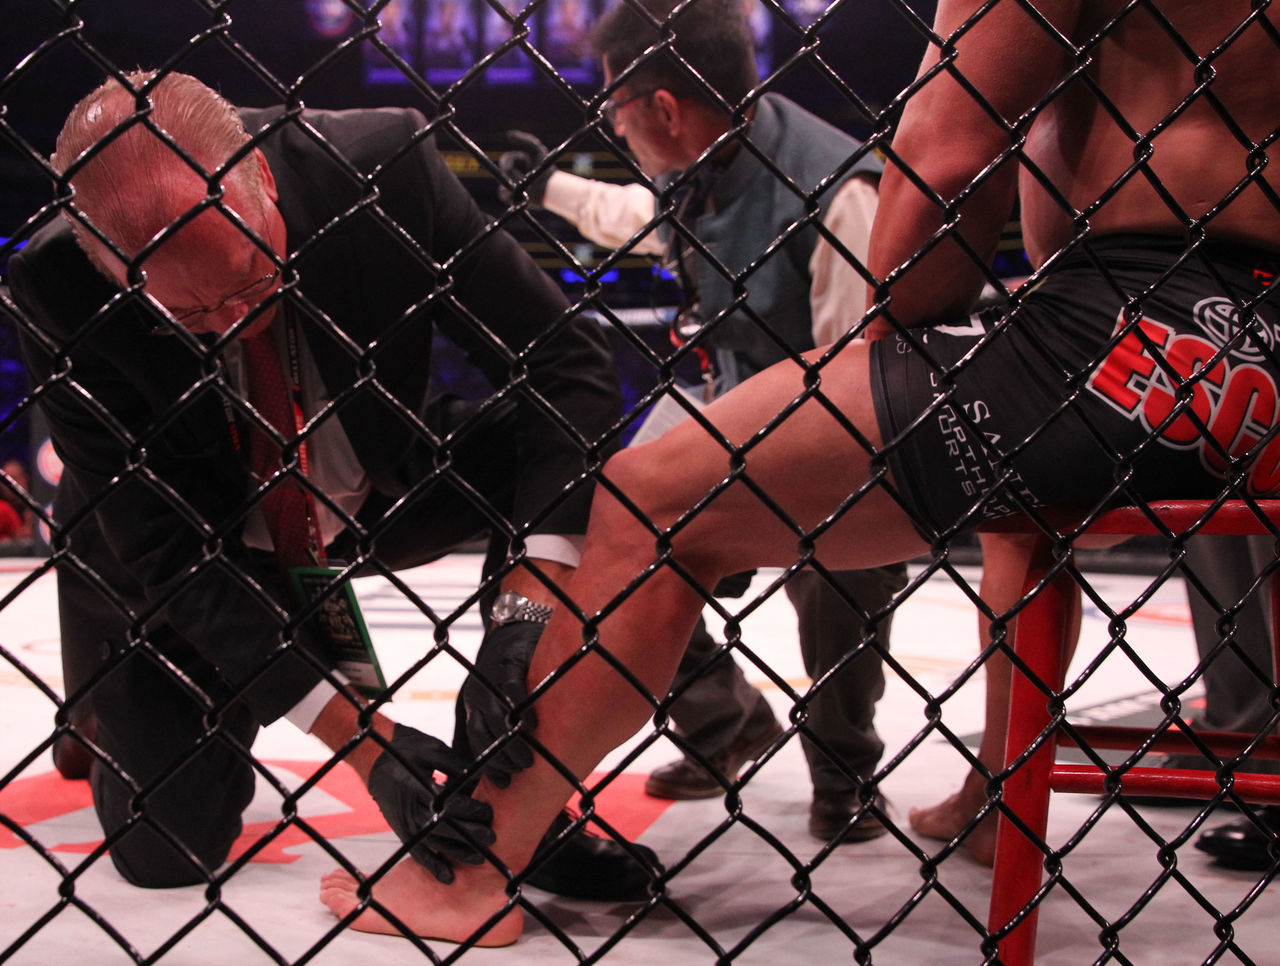 Cropped 2017 06 25t035953z 172354808 nocid rtrmadp 3 mma bellator nyc chandler vs primus